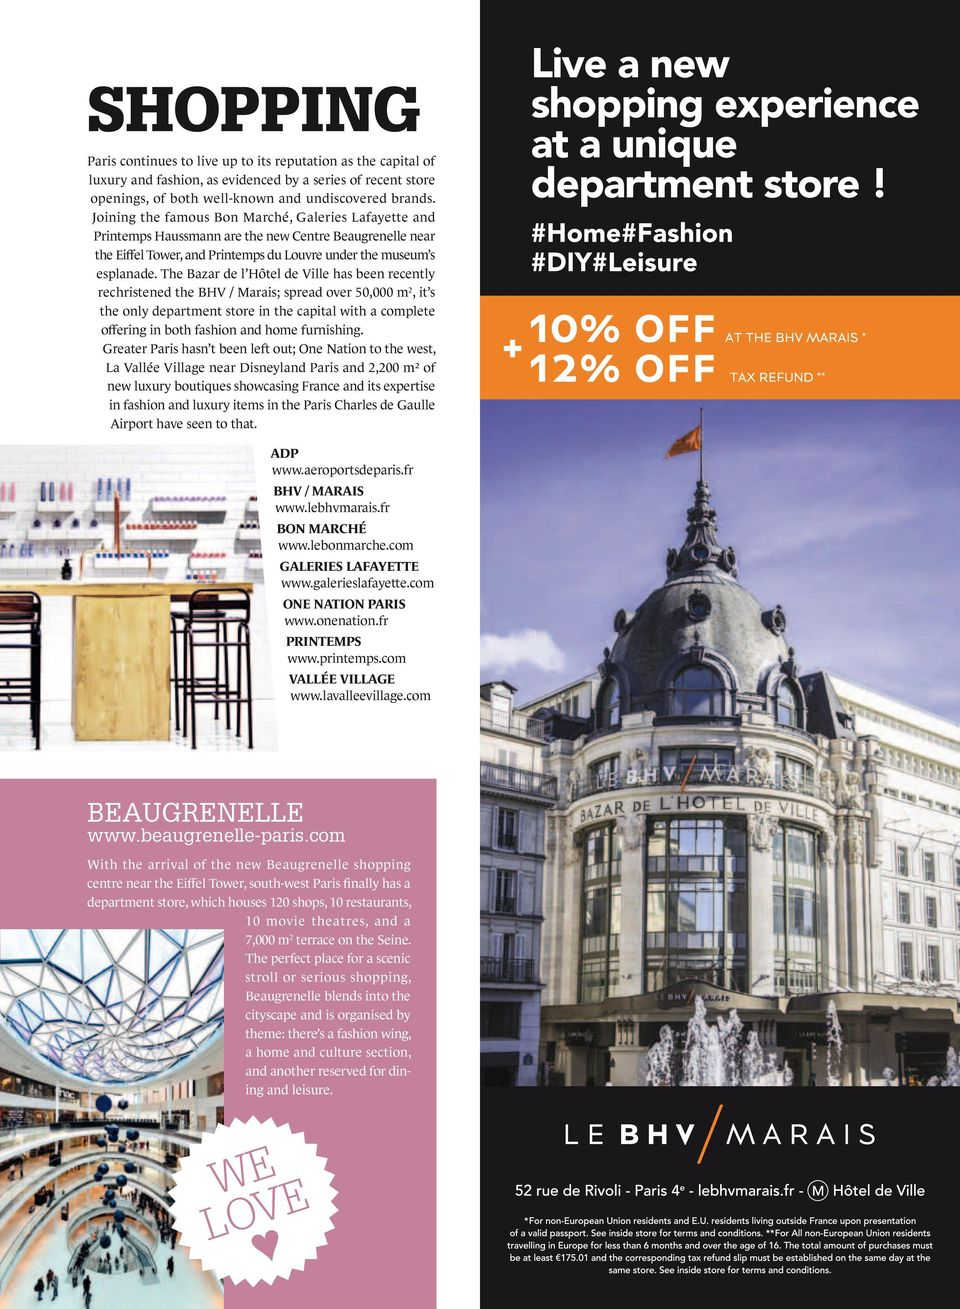 The Bazar de l Hôtel de Ville has been recently rechristened the BHV / Marais; spread over 50,000 m2, it s the only department store in the capital with a complete offering in both fashion and home